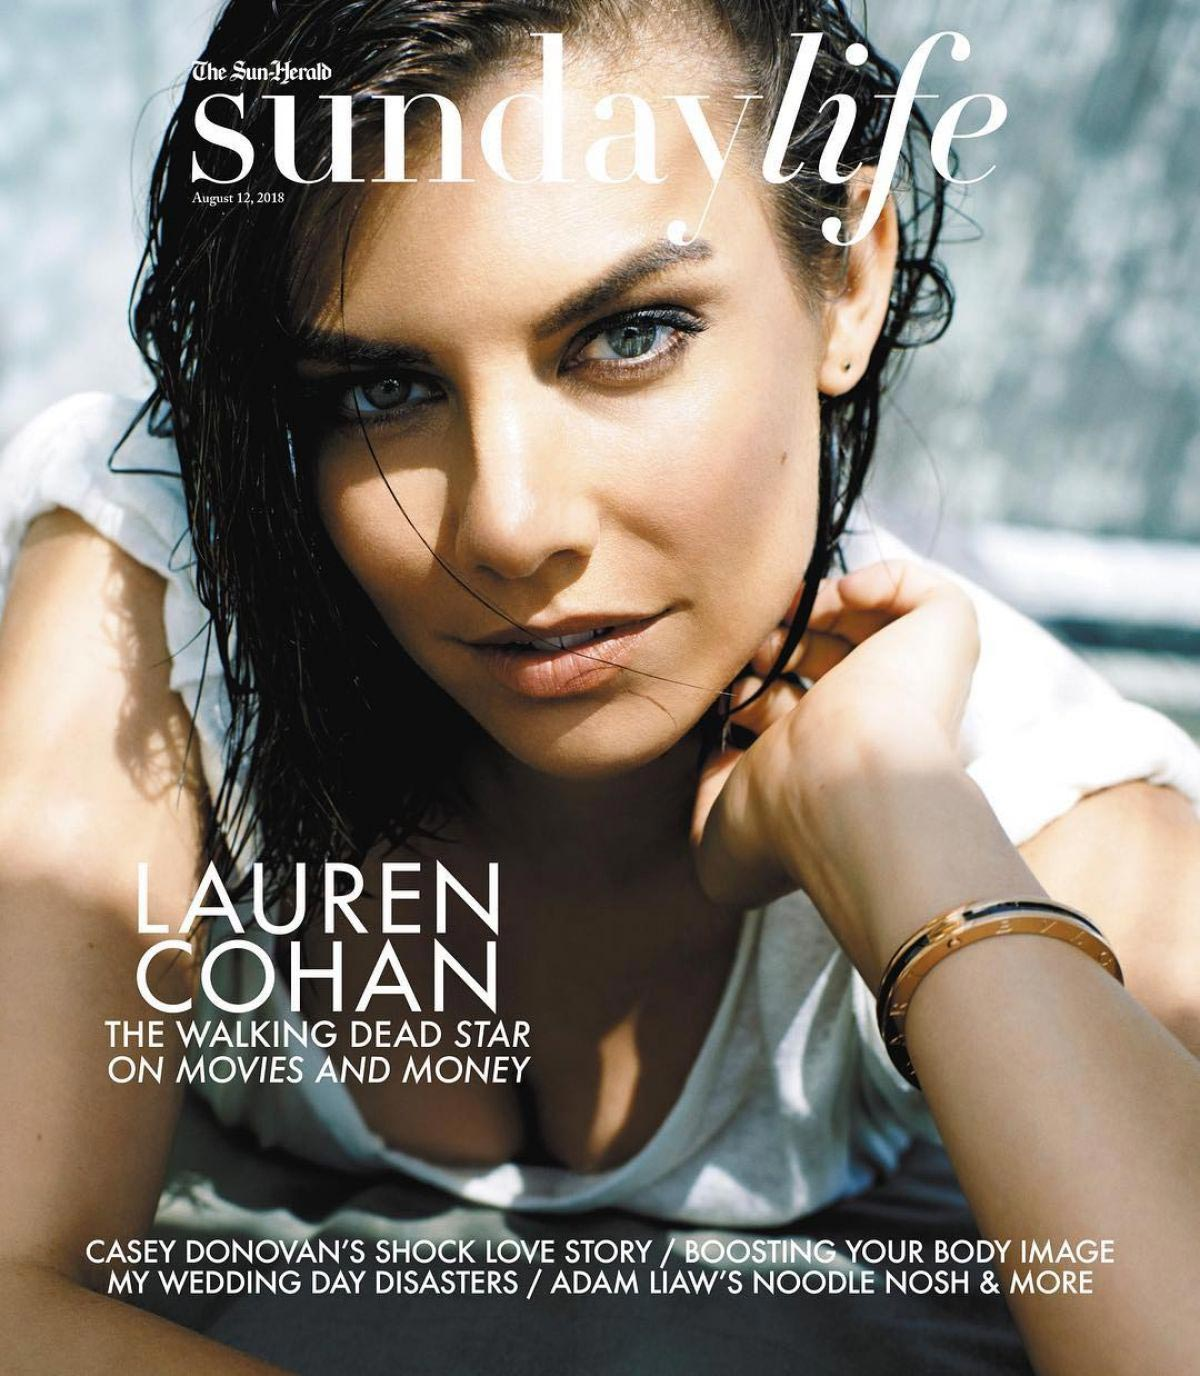 Lauren Cohan on the Cover of Sunday Life Magazine, August 2018 1